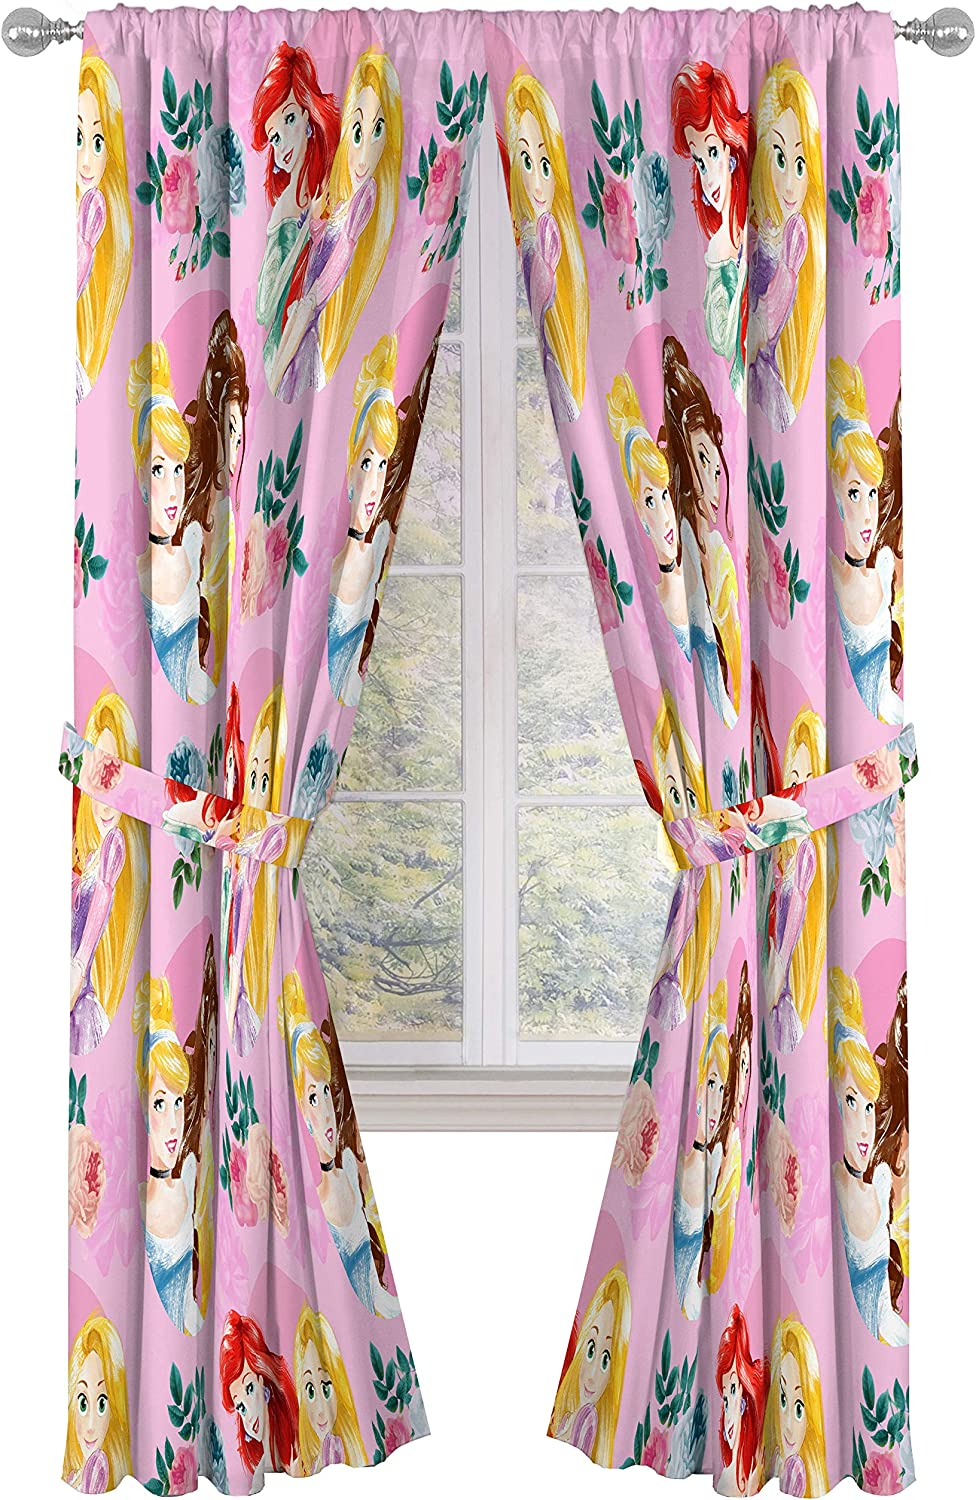 "Disney Princess Sassy 84"" Inch Drapes 4 Piece Set - Beautiful Room Décor & Easy Set Up, Bedding Features Aurora & Rapunzel - Window Curtains Include 2 Panels & 2 Tiebacks (Official Disney Product)"